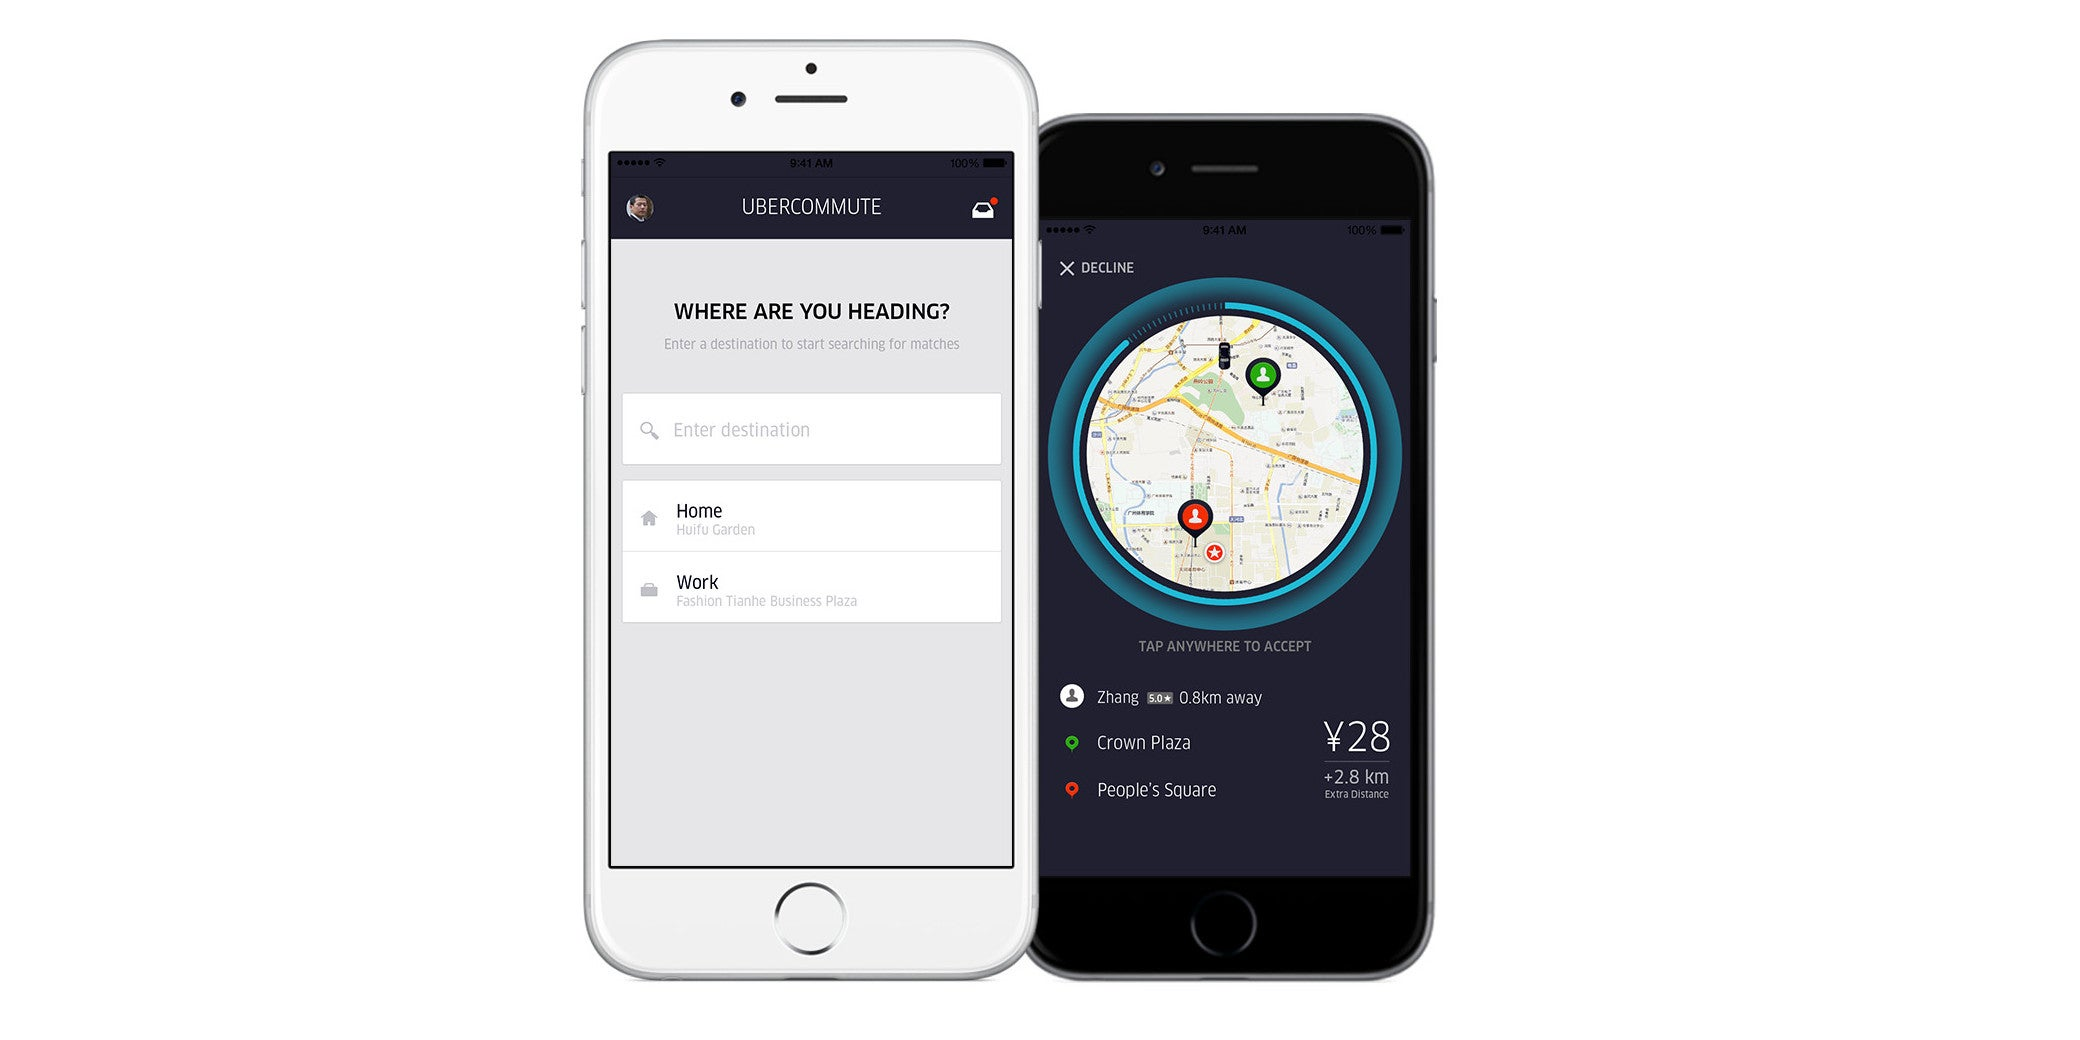 Uber Launches Carpooling Service — First in China, Then Around the World